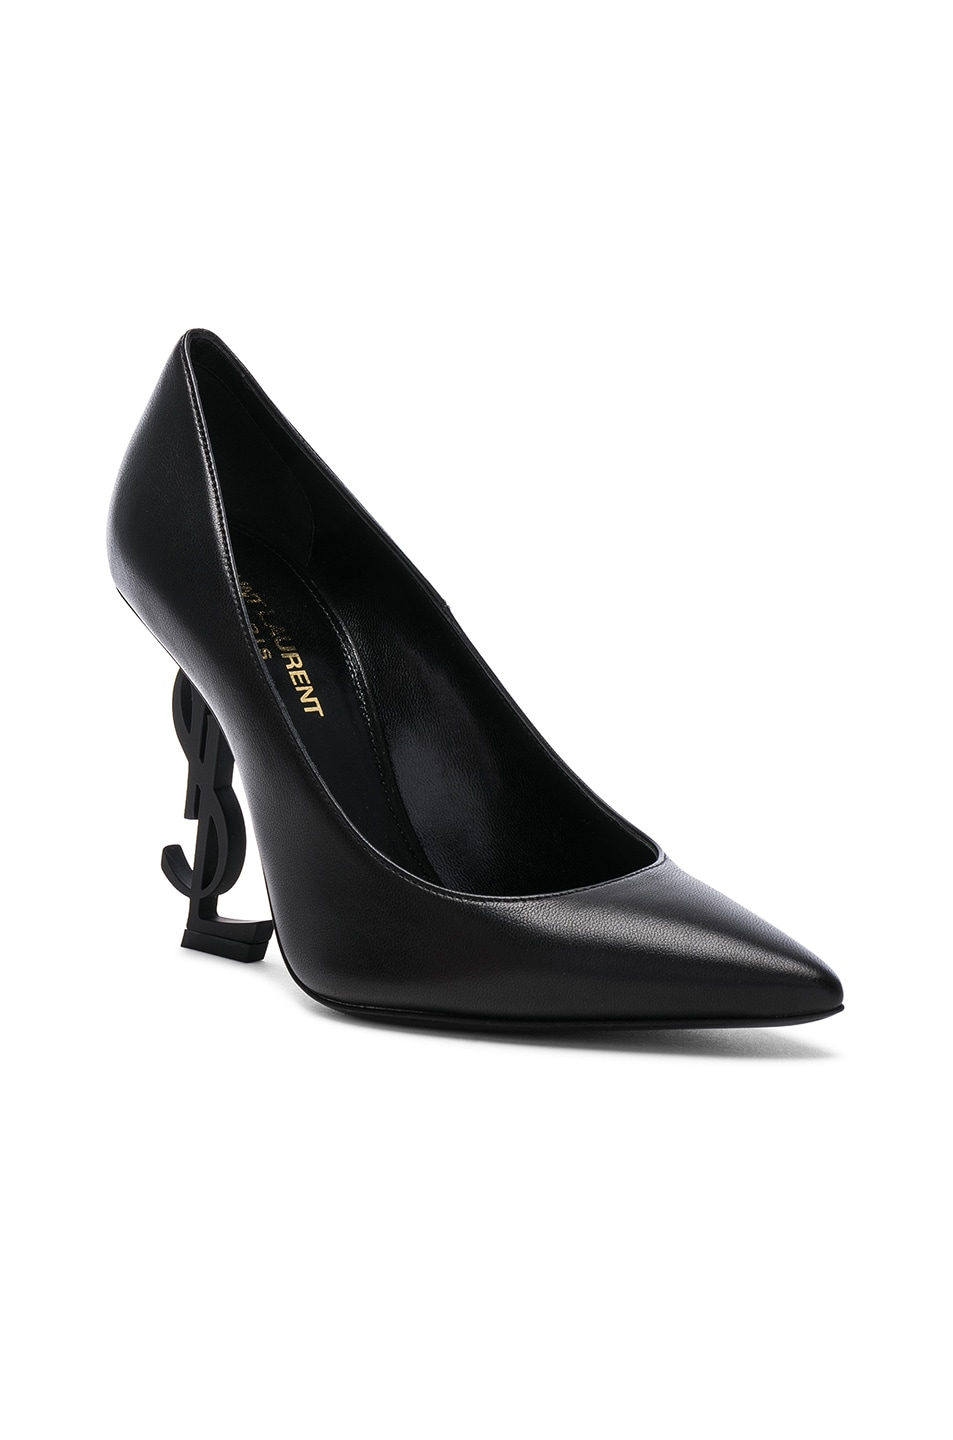 Image 2 of Saint Laurent Opium Leather Monogramme Heels in Black & Black